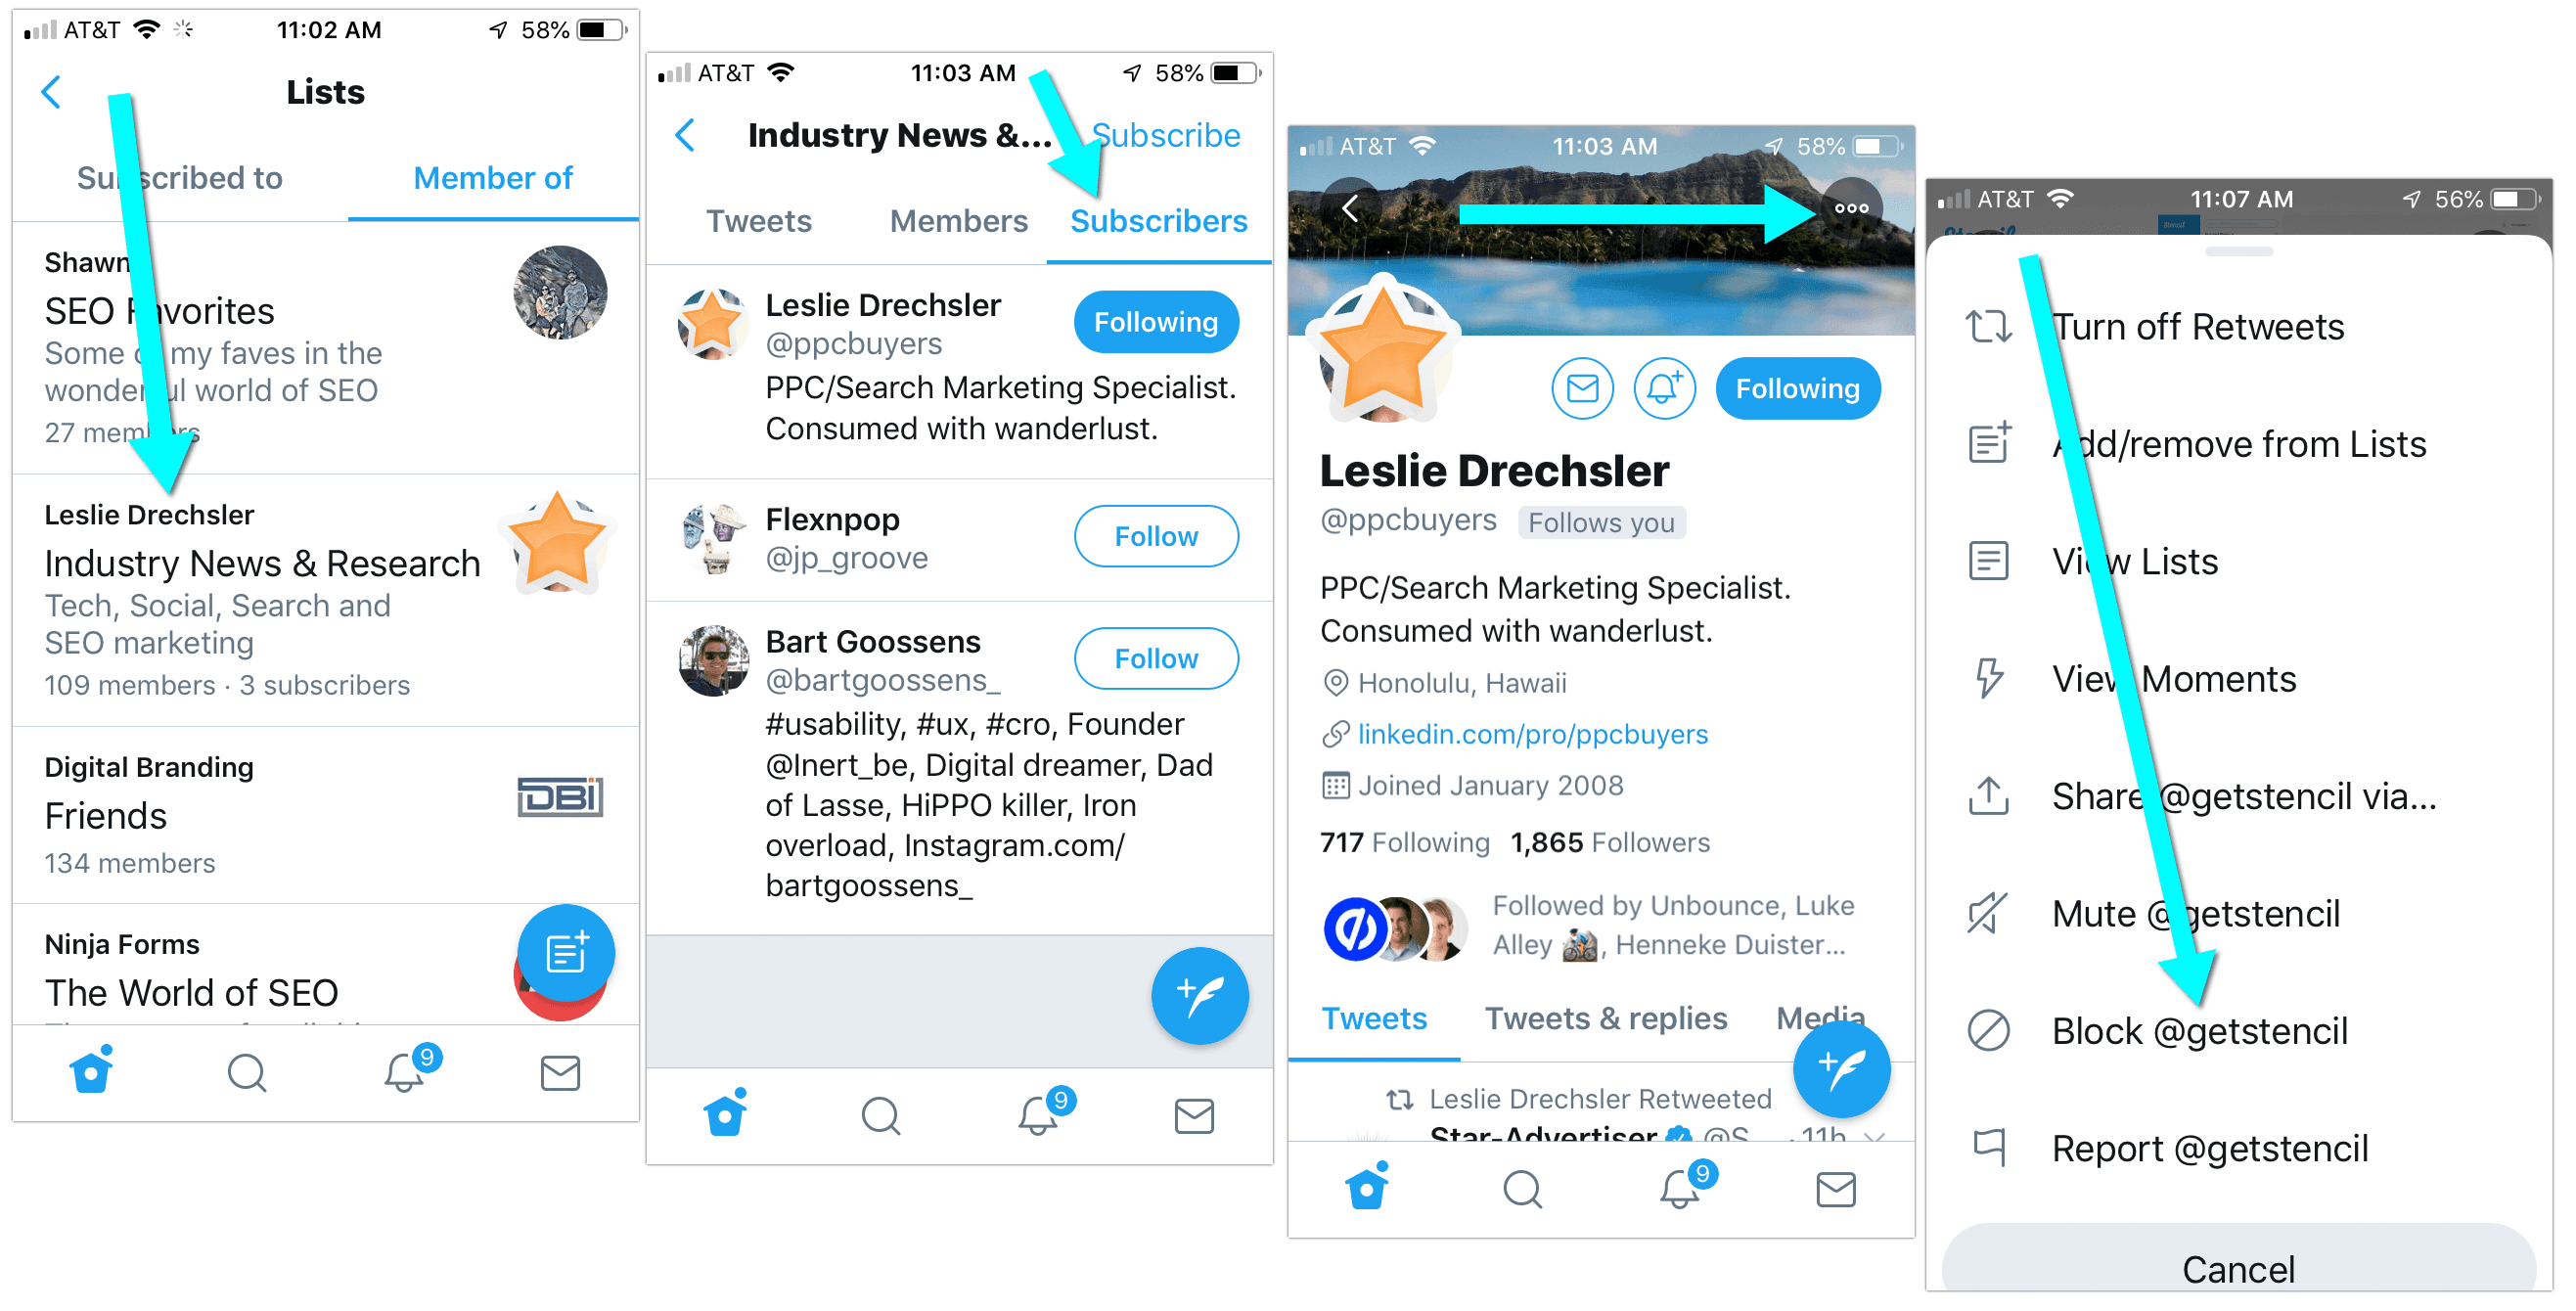 How to Remove Yourself from a Twitter List on Mobile